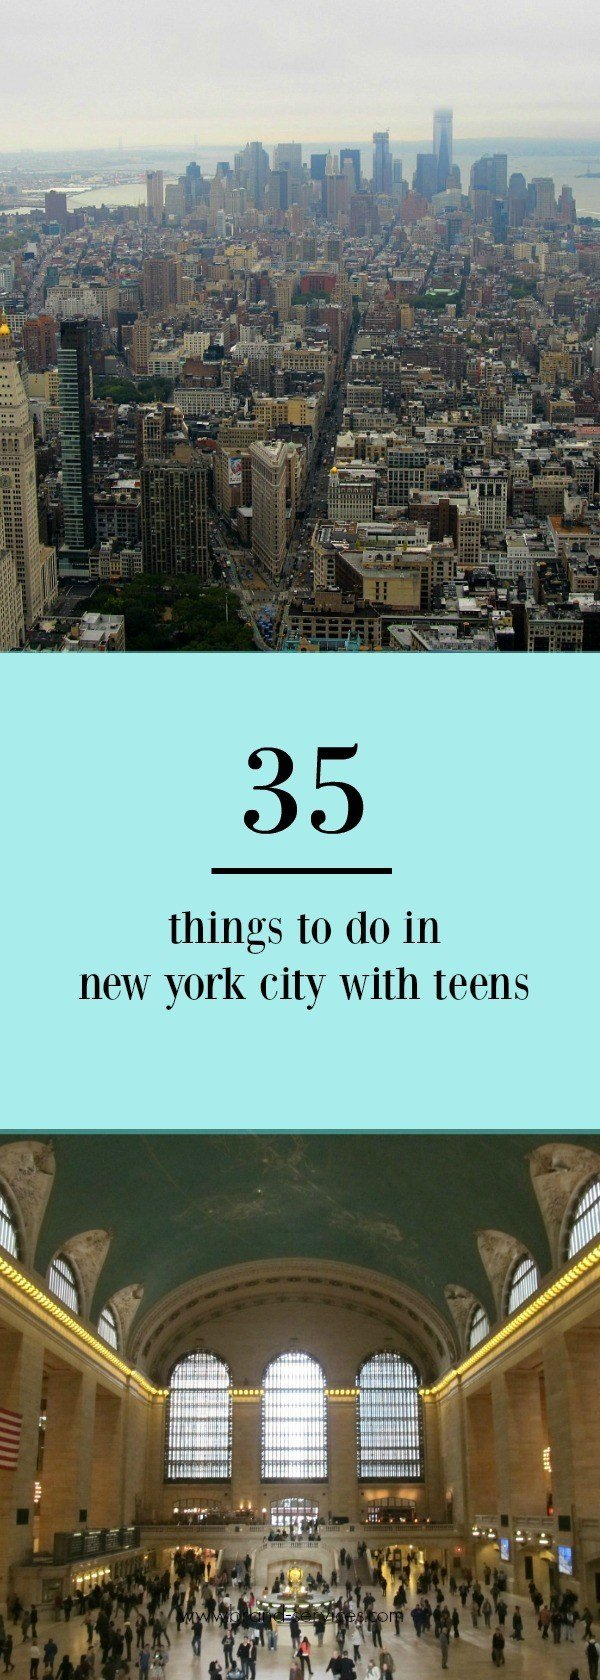 Things to do in new york city with teens for an for Stuff to see in nyc